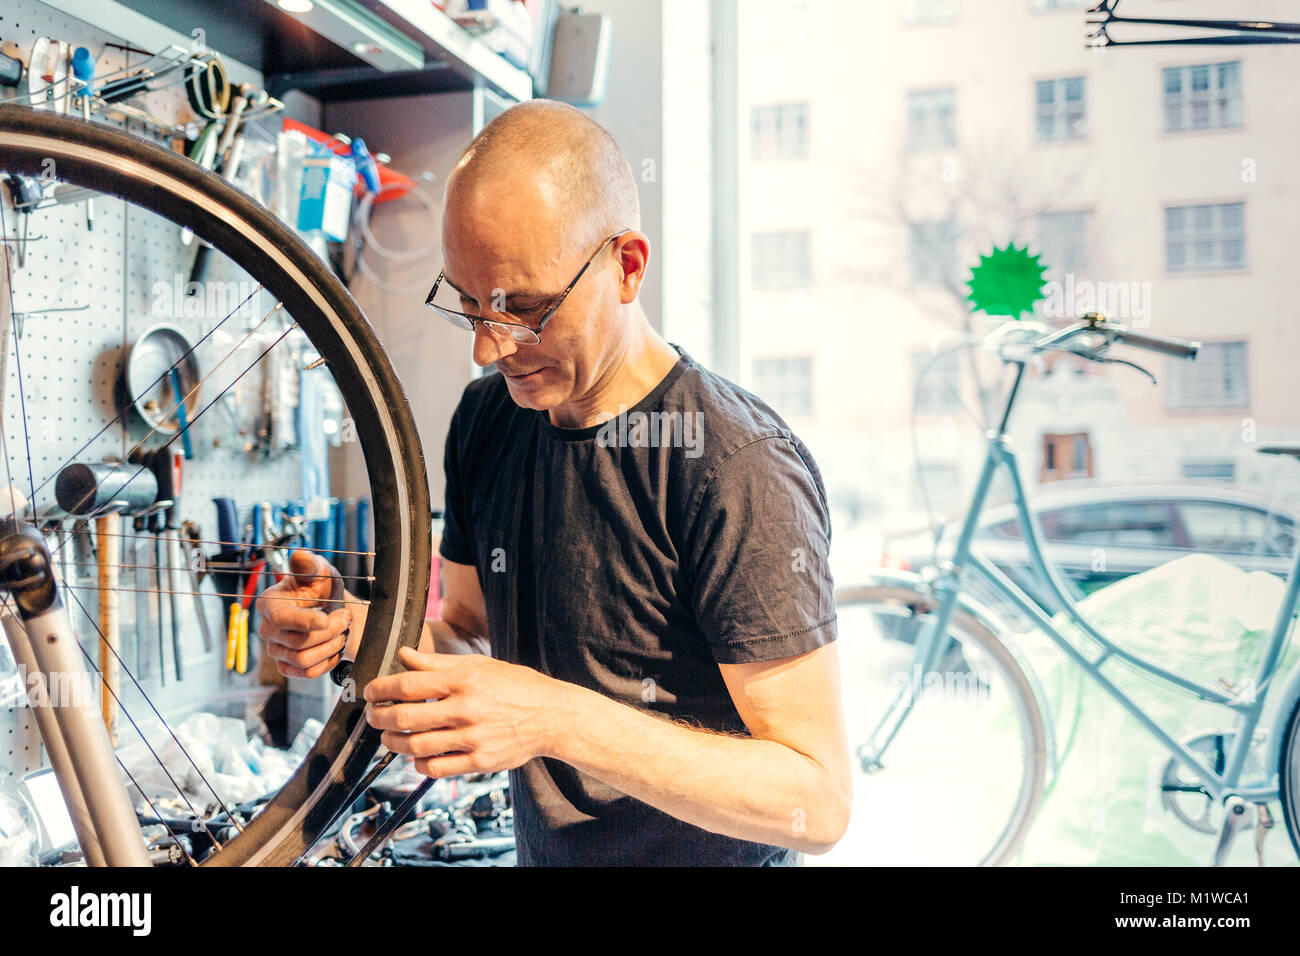 Small business owner of bicycle store - Stock Image